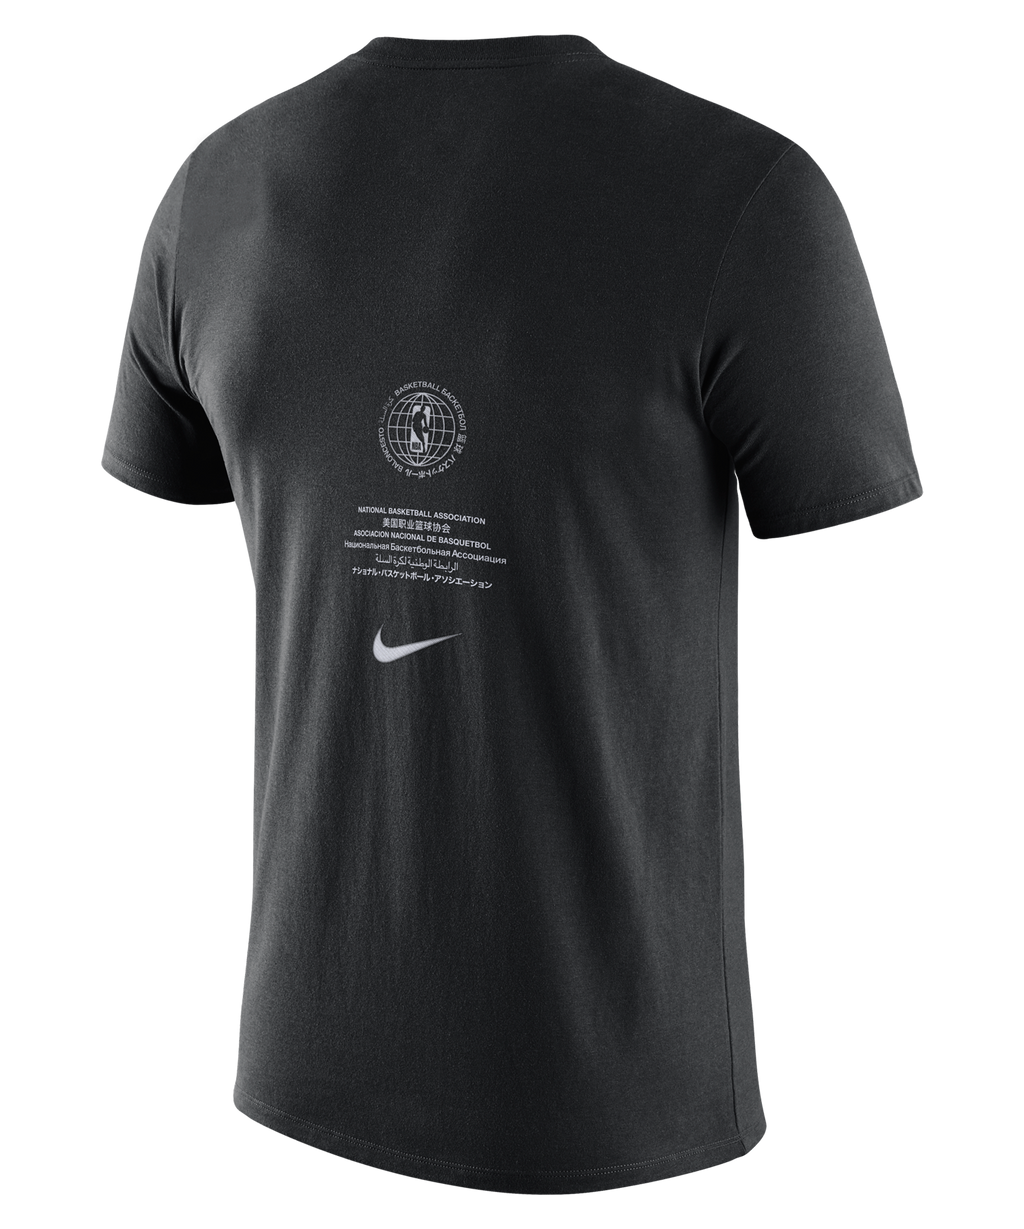 LA Lakers Courtside Logo Nike NBA T-Shirt